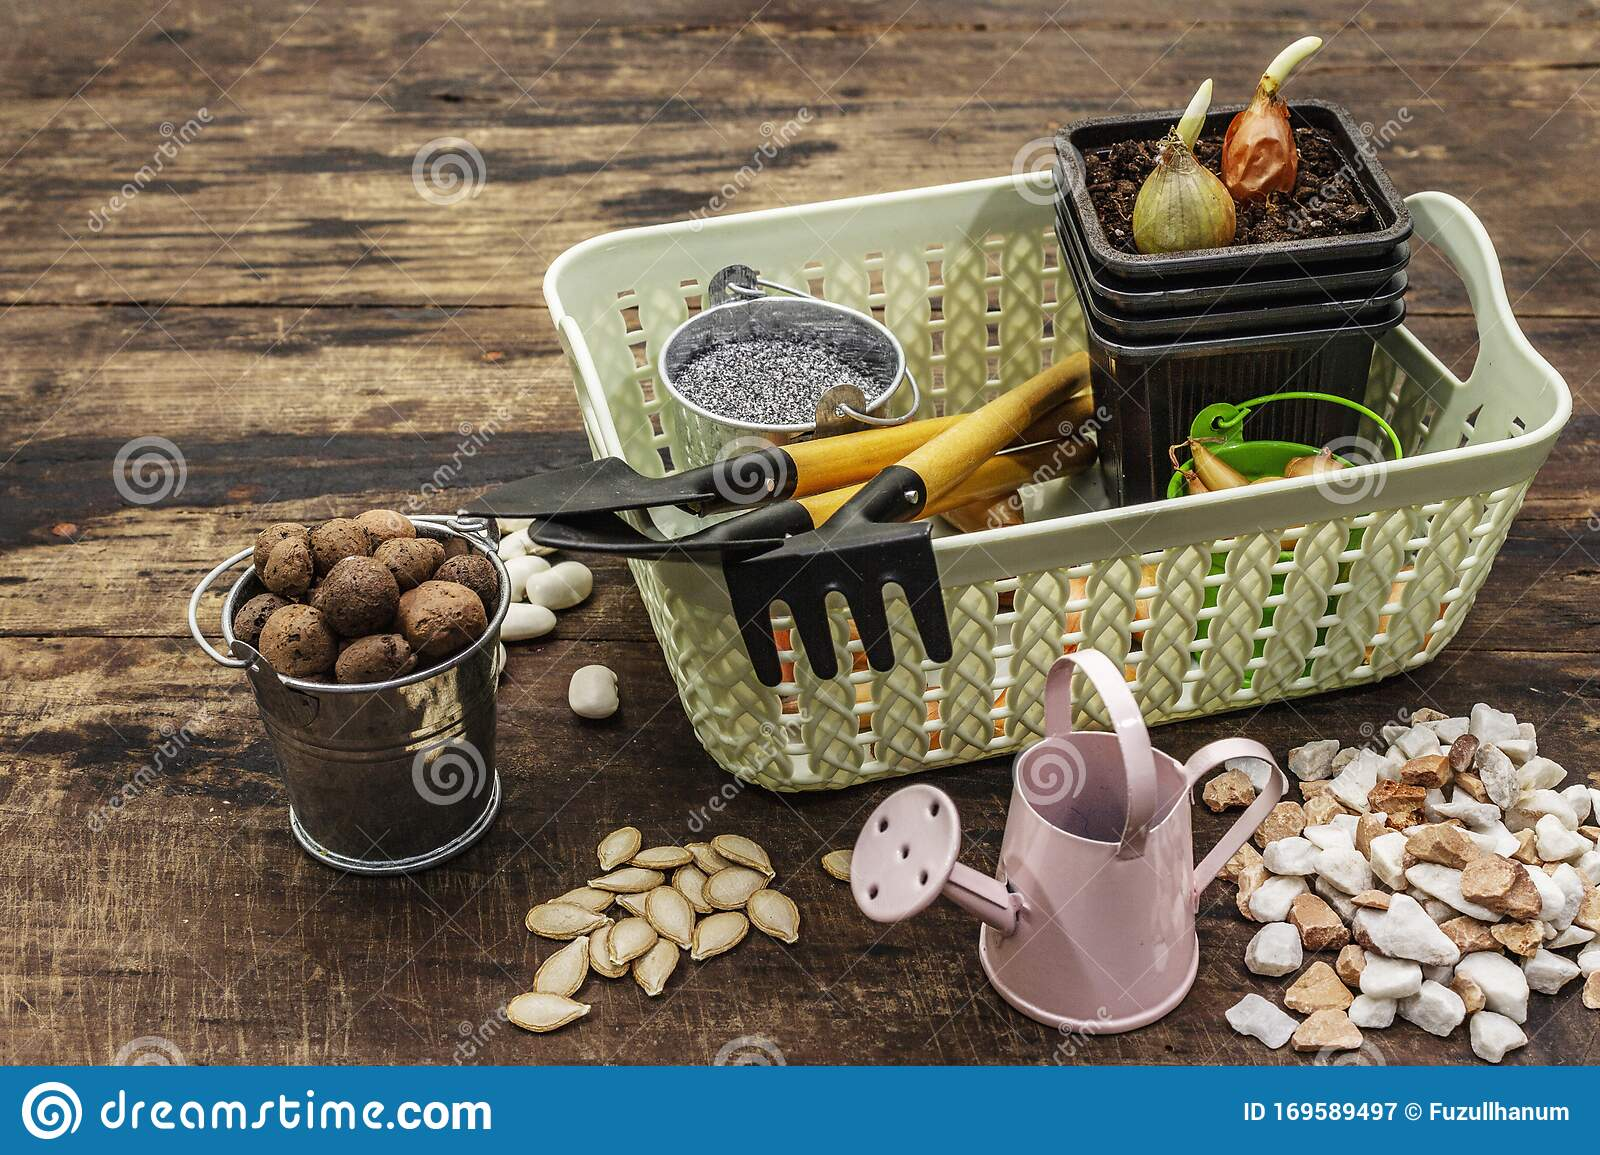 Spring Planting And Gardening Concept. Tools, Watering Can, Fresh Onion Bulbs In A Bucket, Expanded Clay, Sand, Seeds. Wooden Stock Image